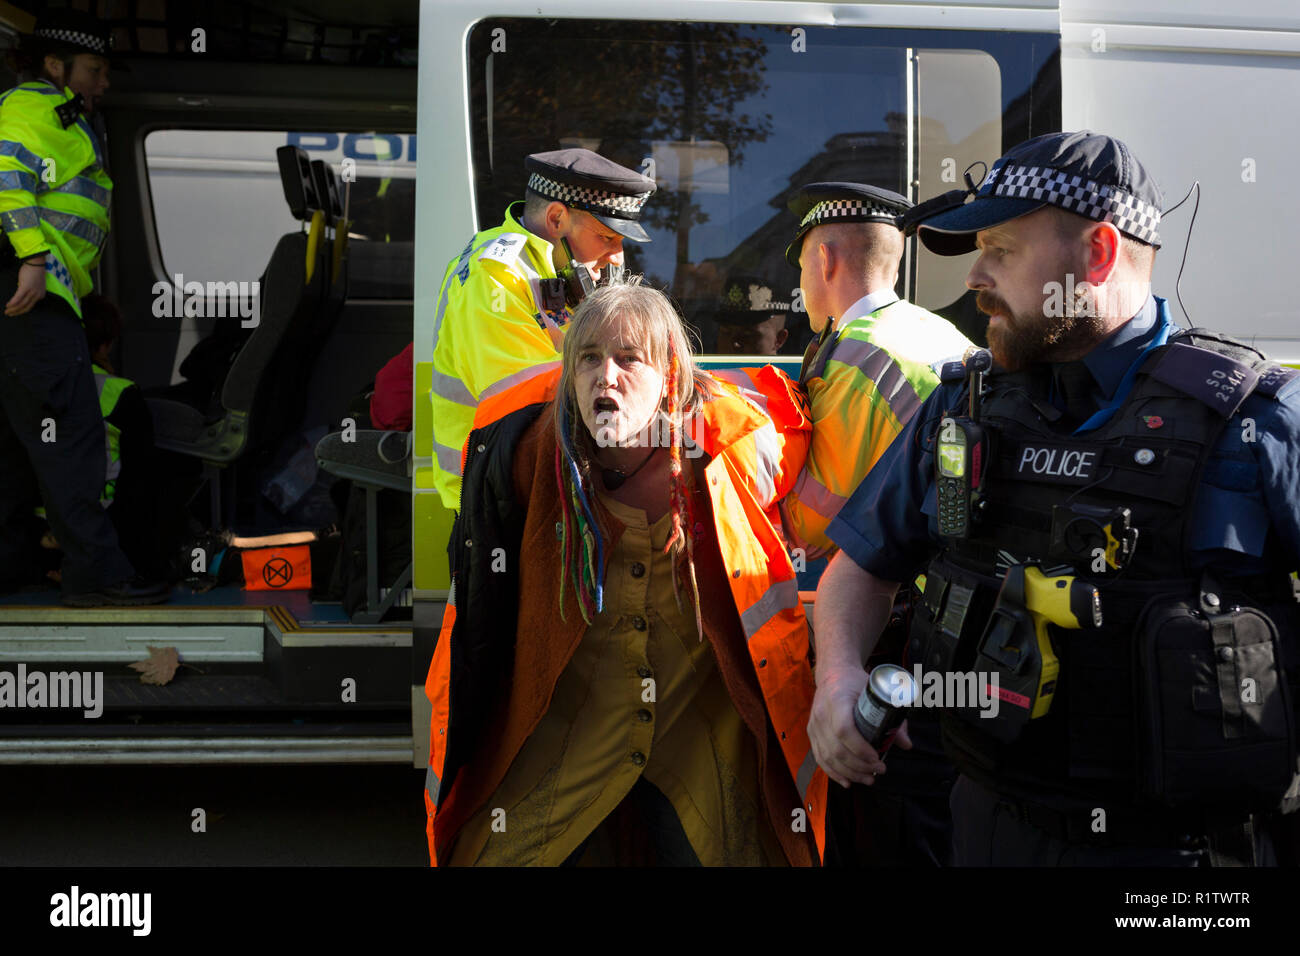 A climate change protester is detained by police officers in Whitehall, on 14th November 2018, in London, England. (Photo by Richard Baker / In Pictures via Getty Images) - Stock Image